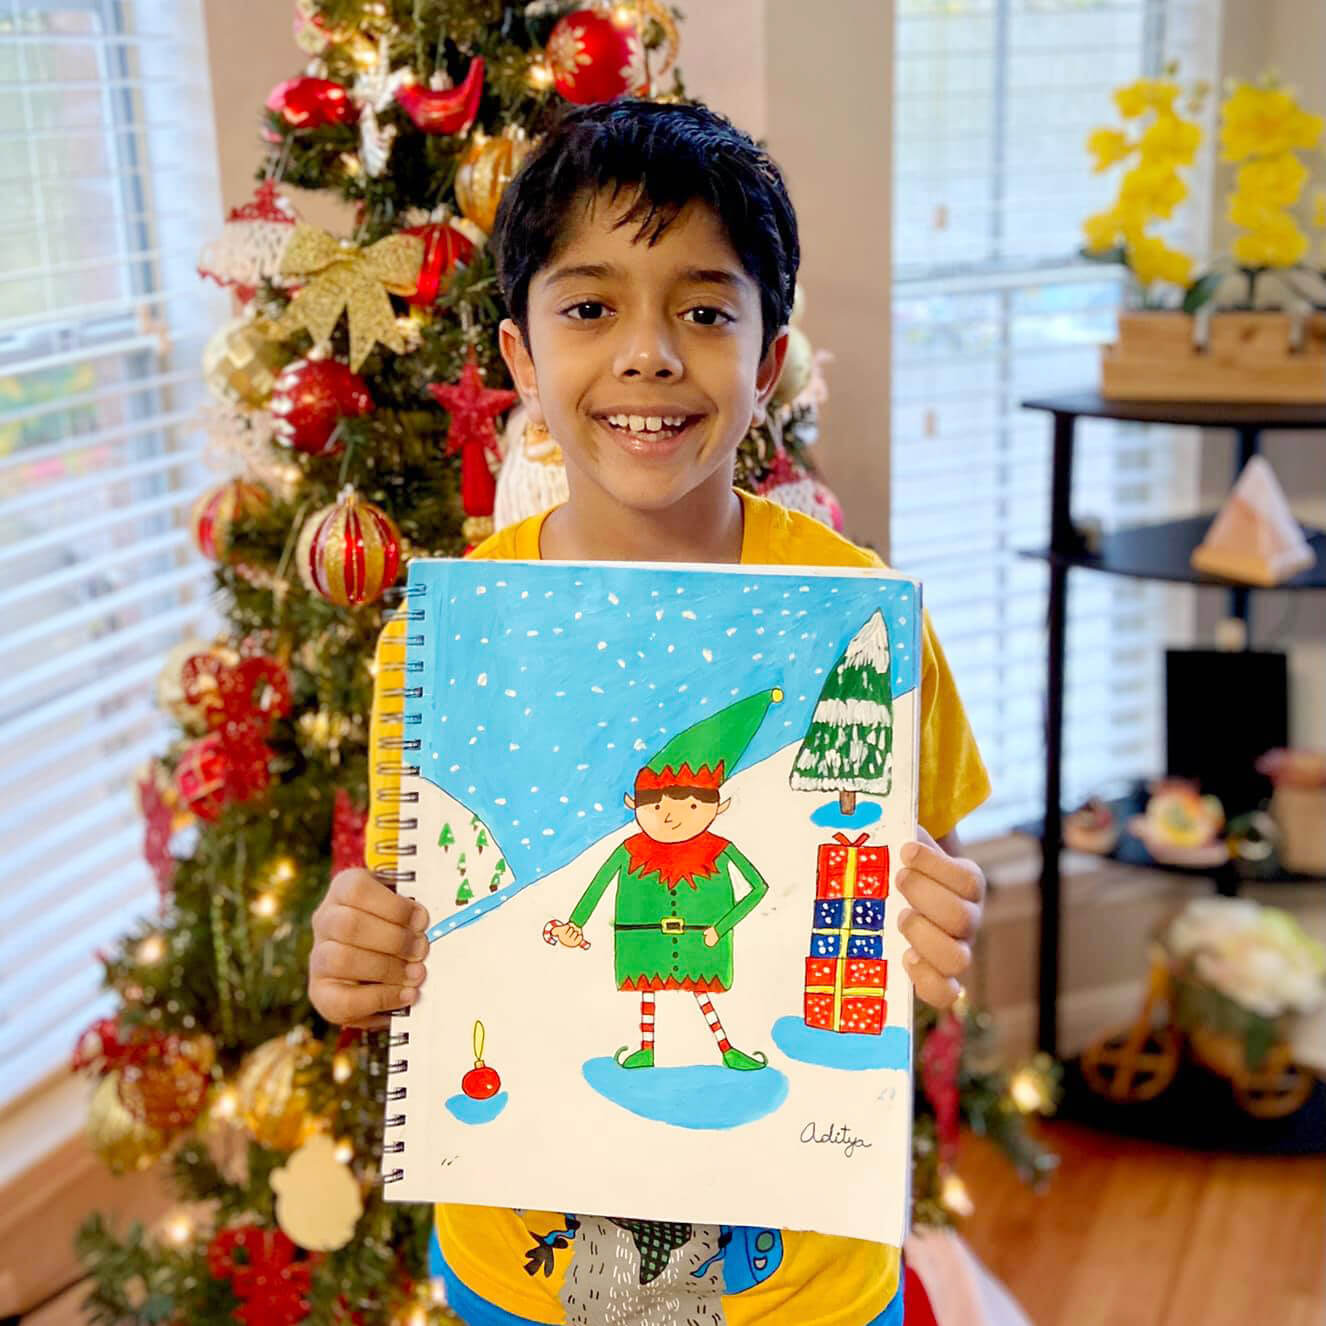 Cute elf christmas painting by a boy at Nimmy;s ARt online art classes for kids, Katy, Texas.